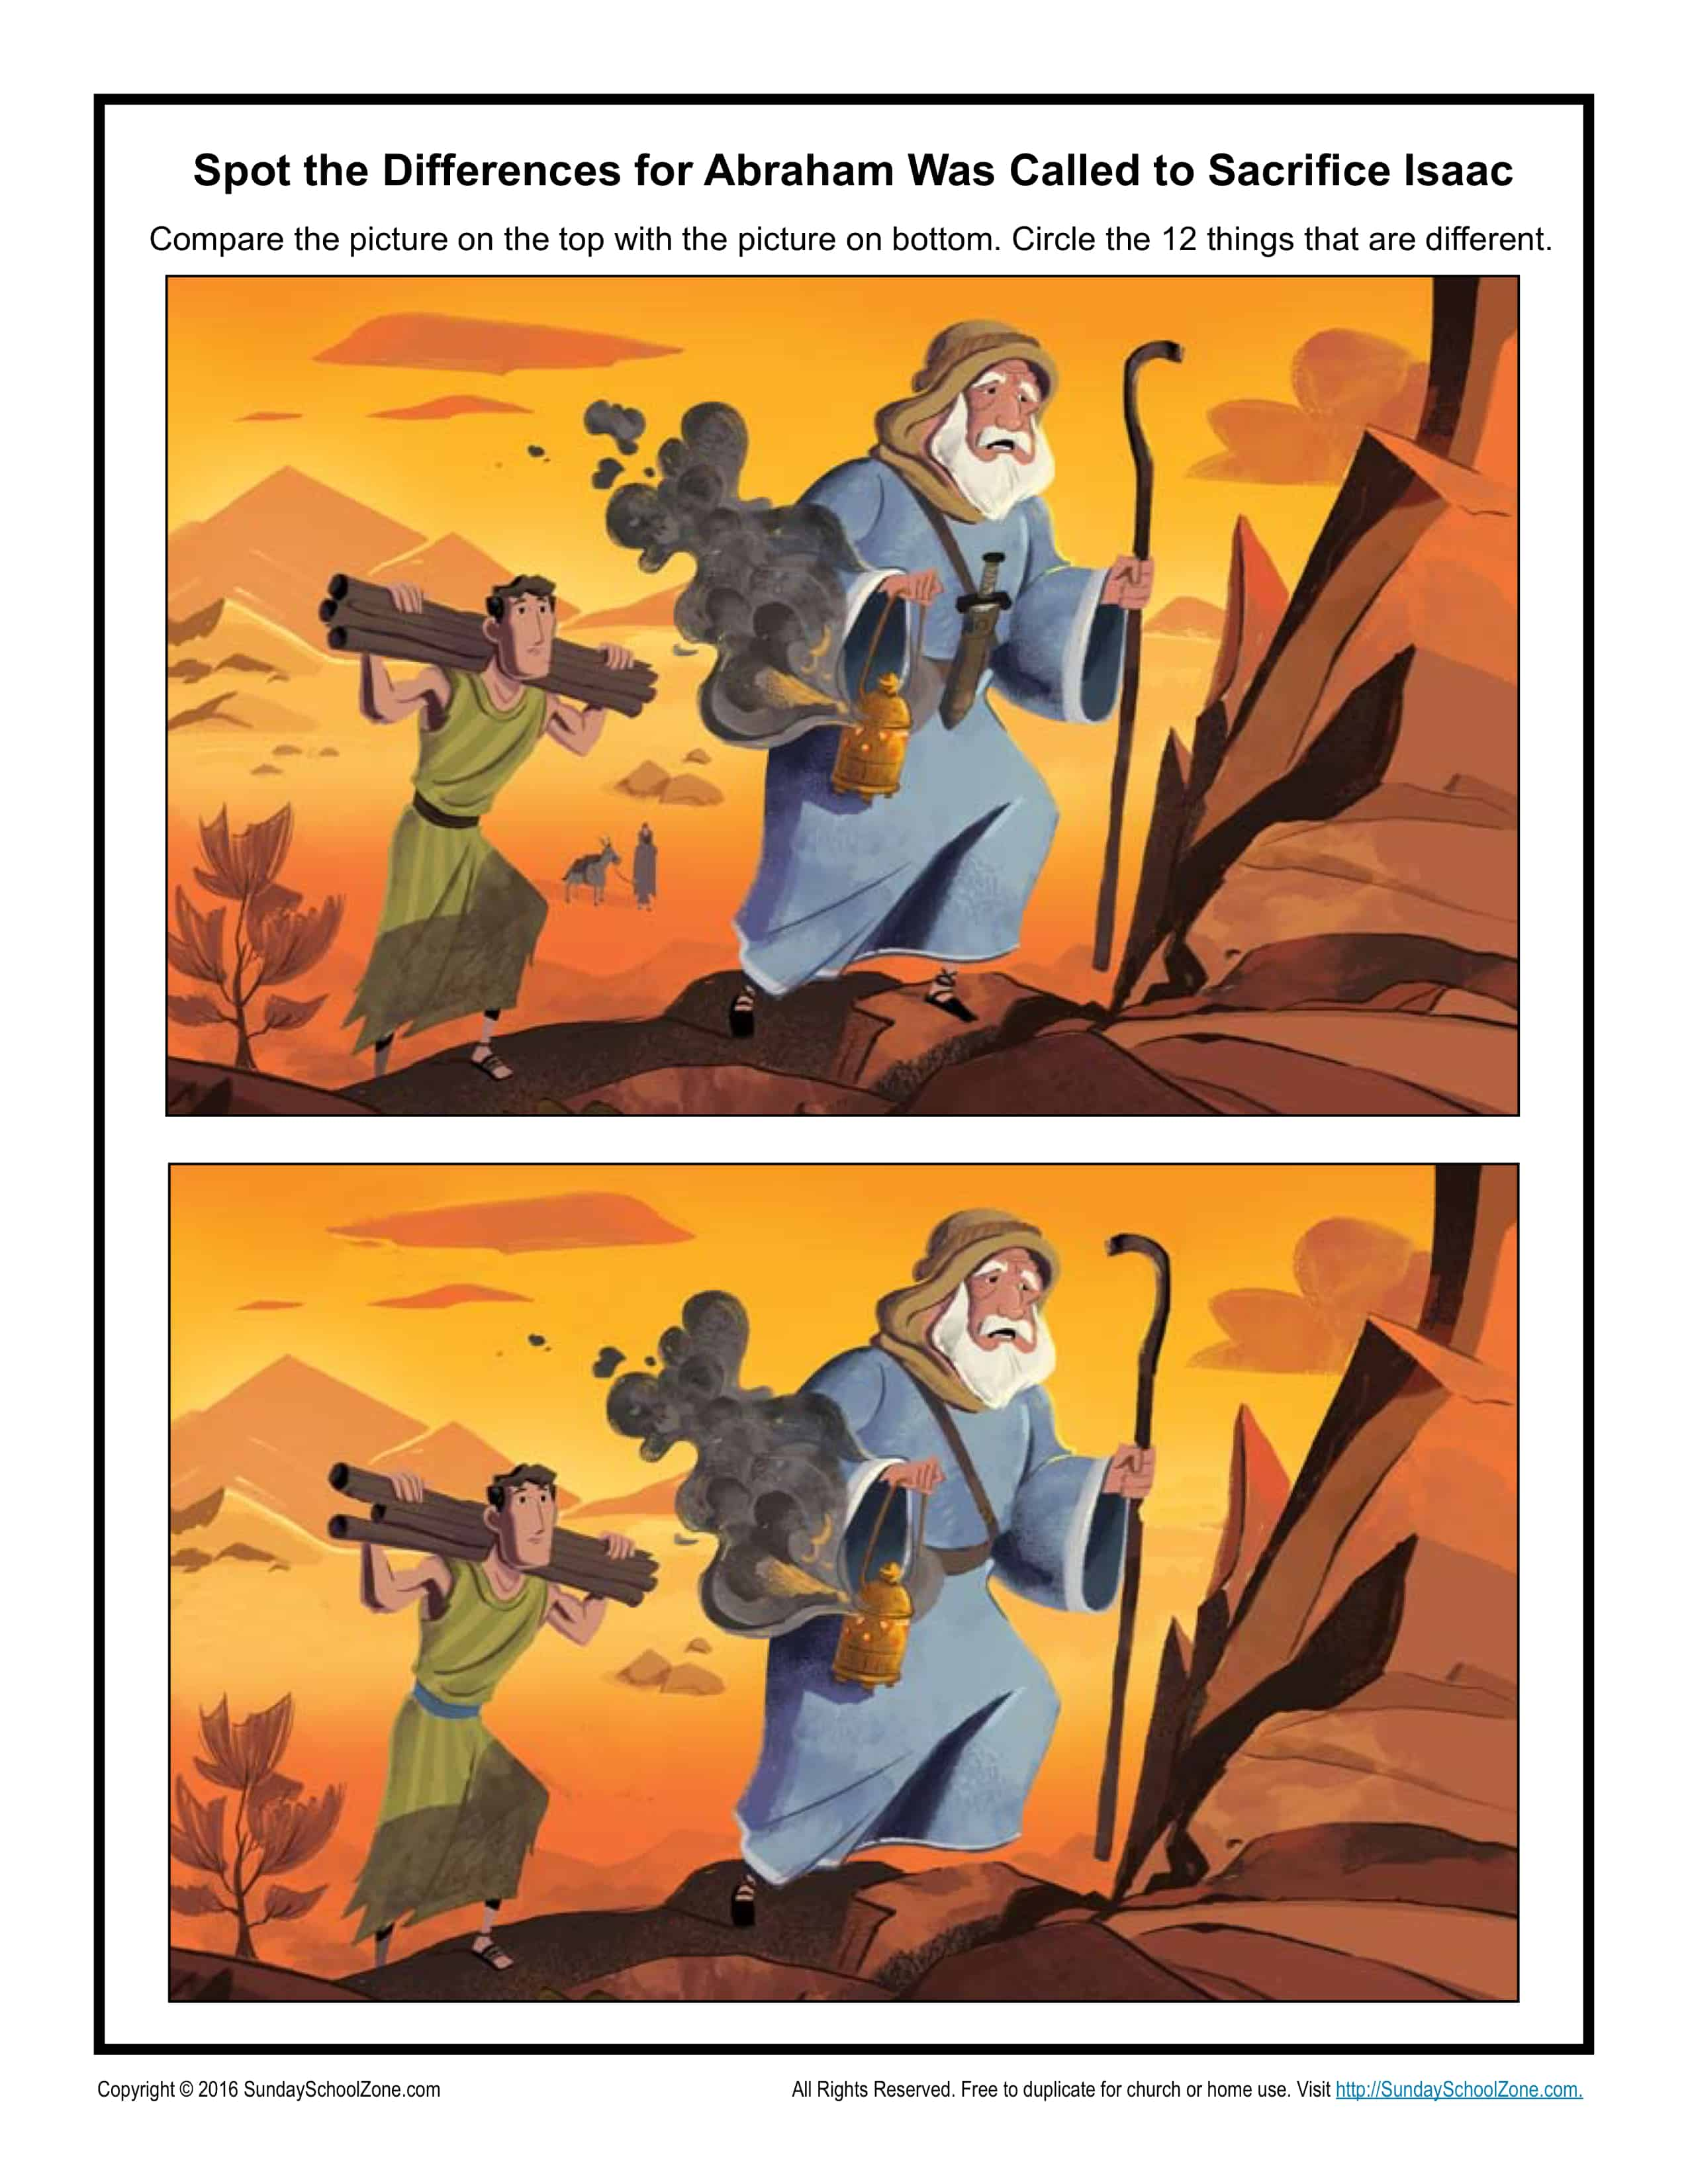 Abraham Was Called To Sacrifice Isaac Spot The Differences